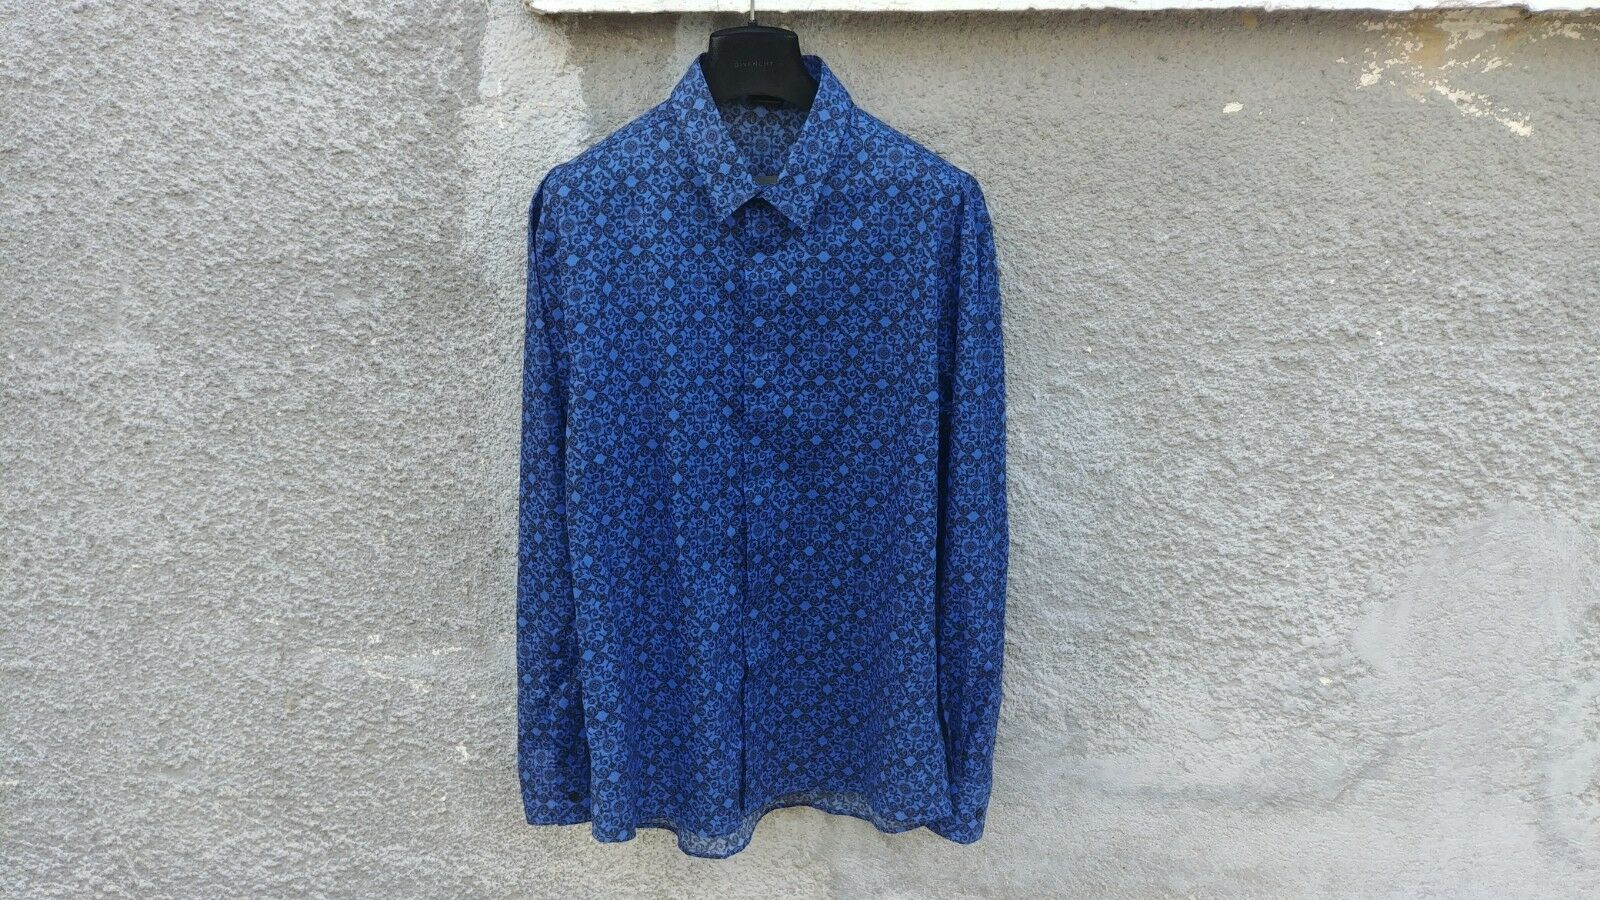 Versace Collection bluee Fantasia Floral Baroque Print Cotton Shirt size 45 (XL)